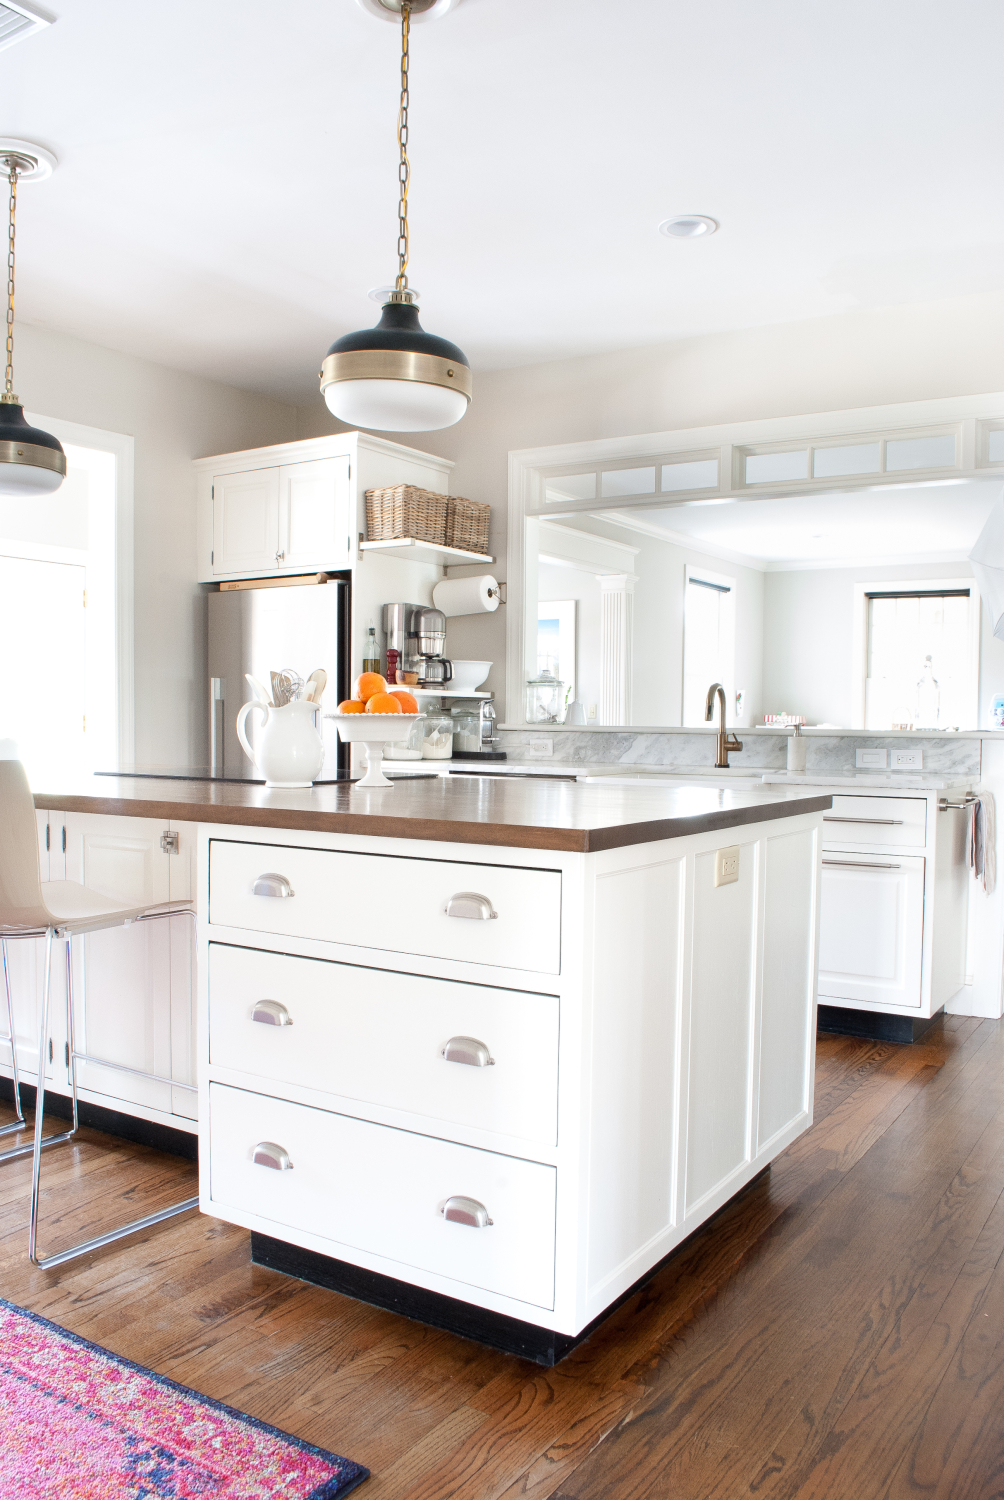 Plush Home Kitchen Island Images A Customlook How To Add Detail To A Plain Kitchen Island Chronicles Kitchen Island How To Add Trim To A Plain Kitchen Island Or Plain Cabinets Small Spaces Images kitchen Kitchen Island Images